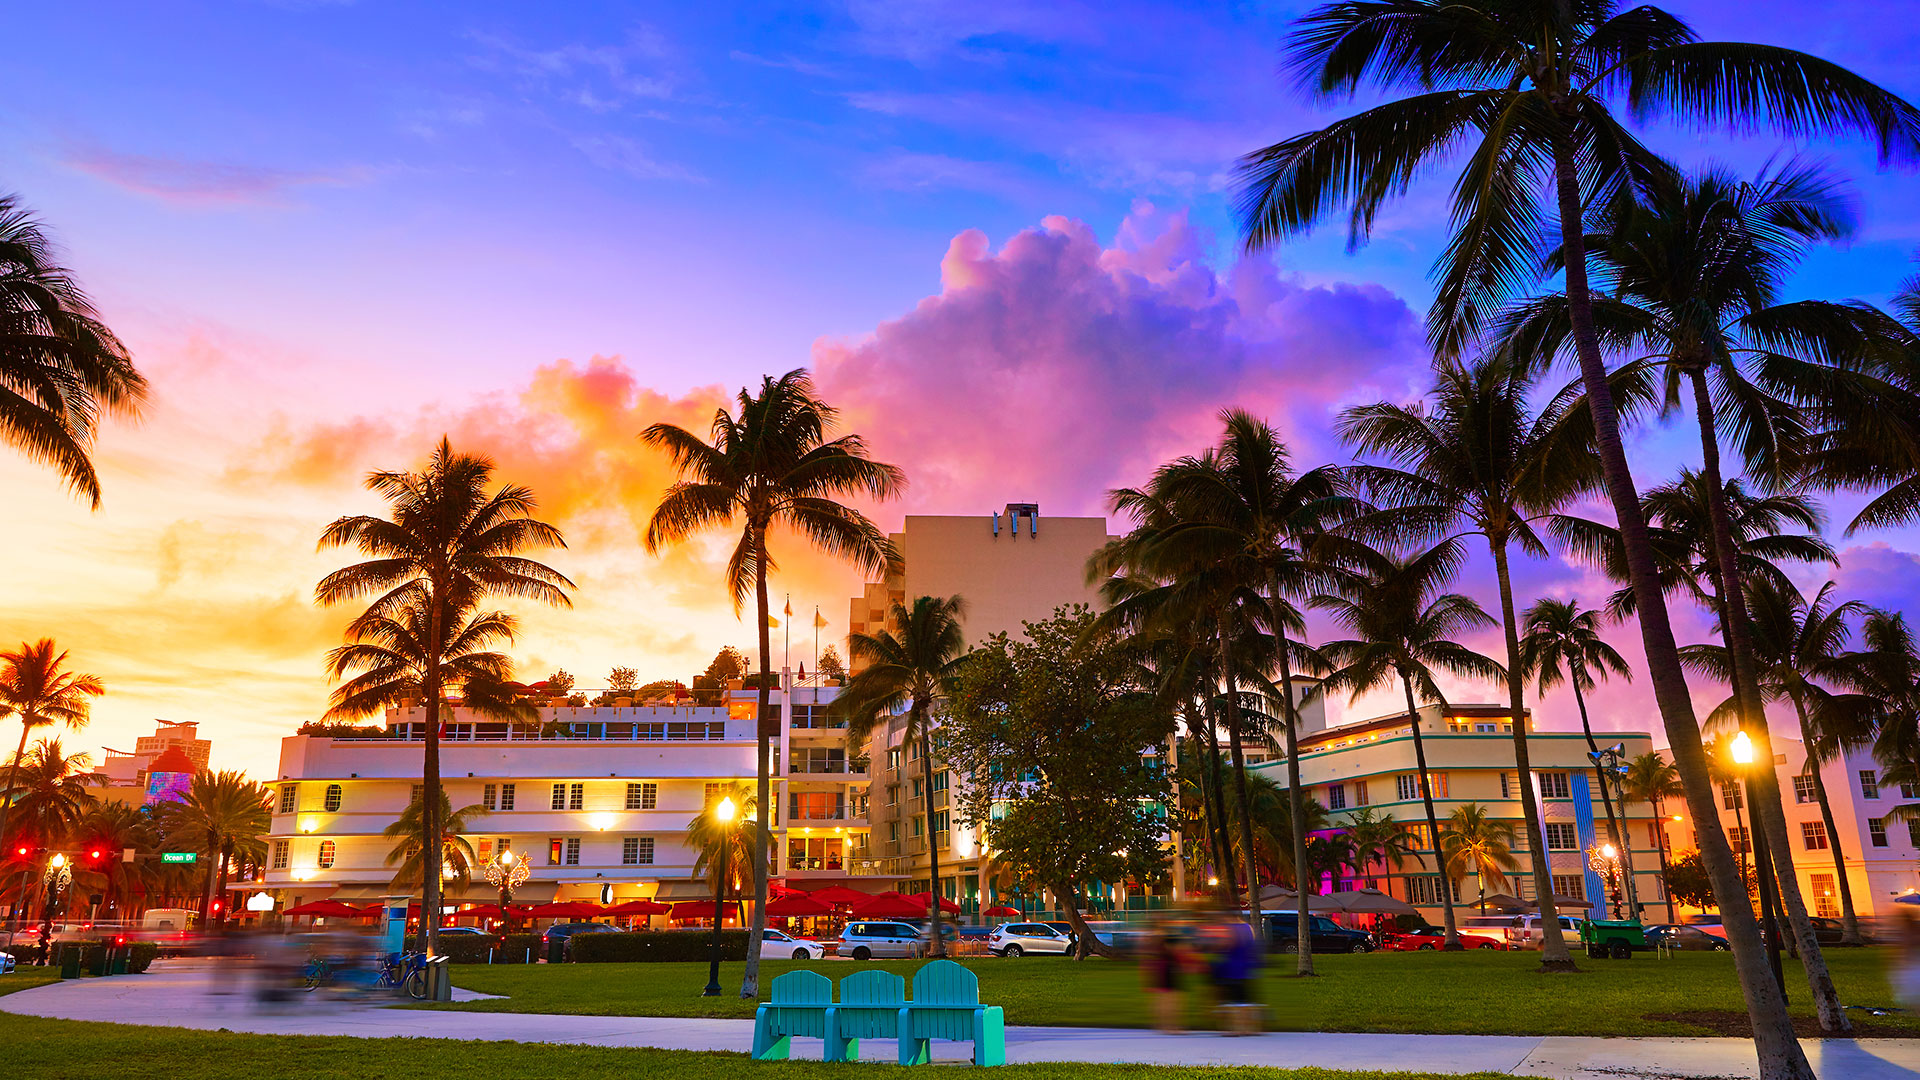 royal-holiday-hotel-resort-park-royal-miami-beach-estados-unidos-florida-miami